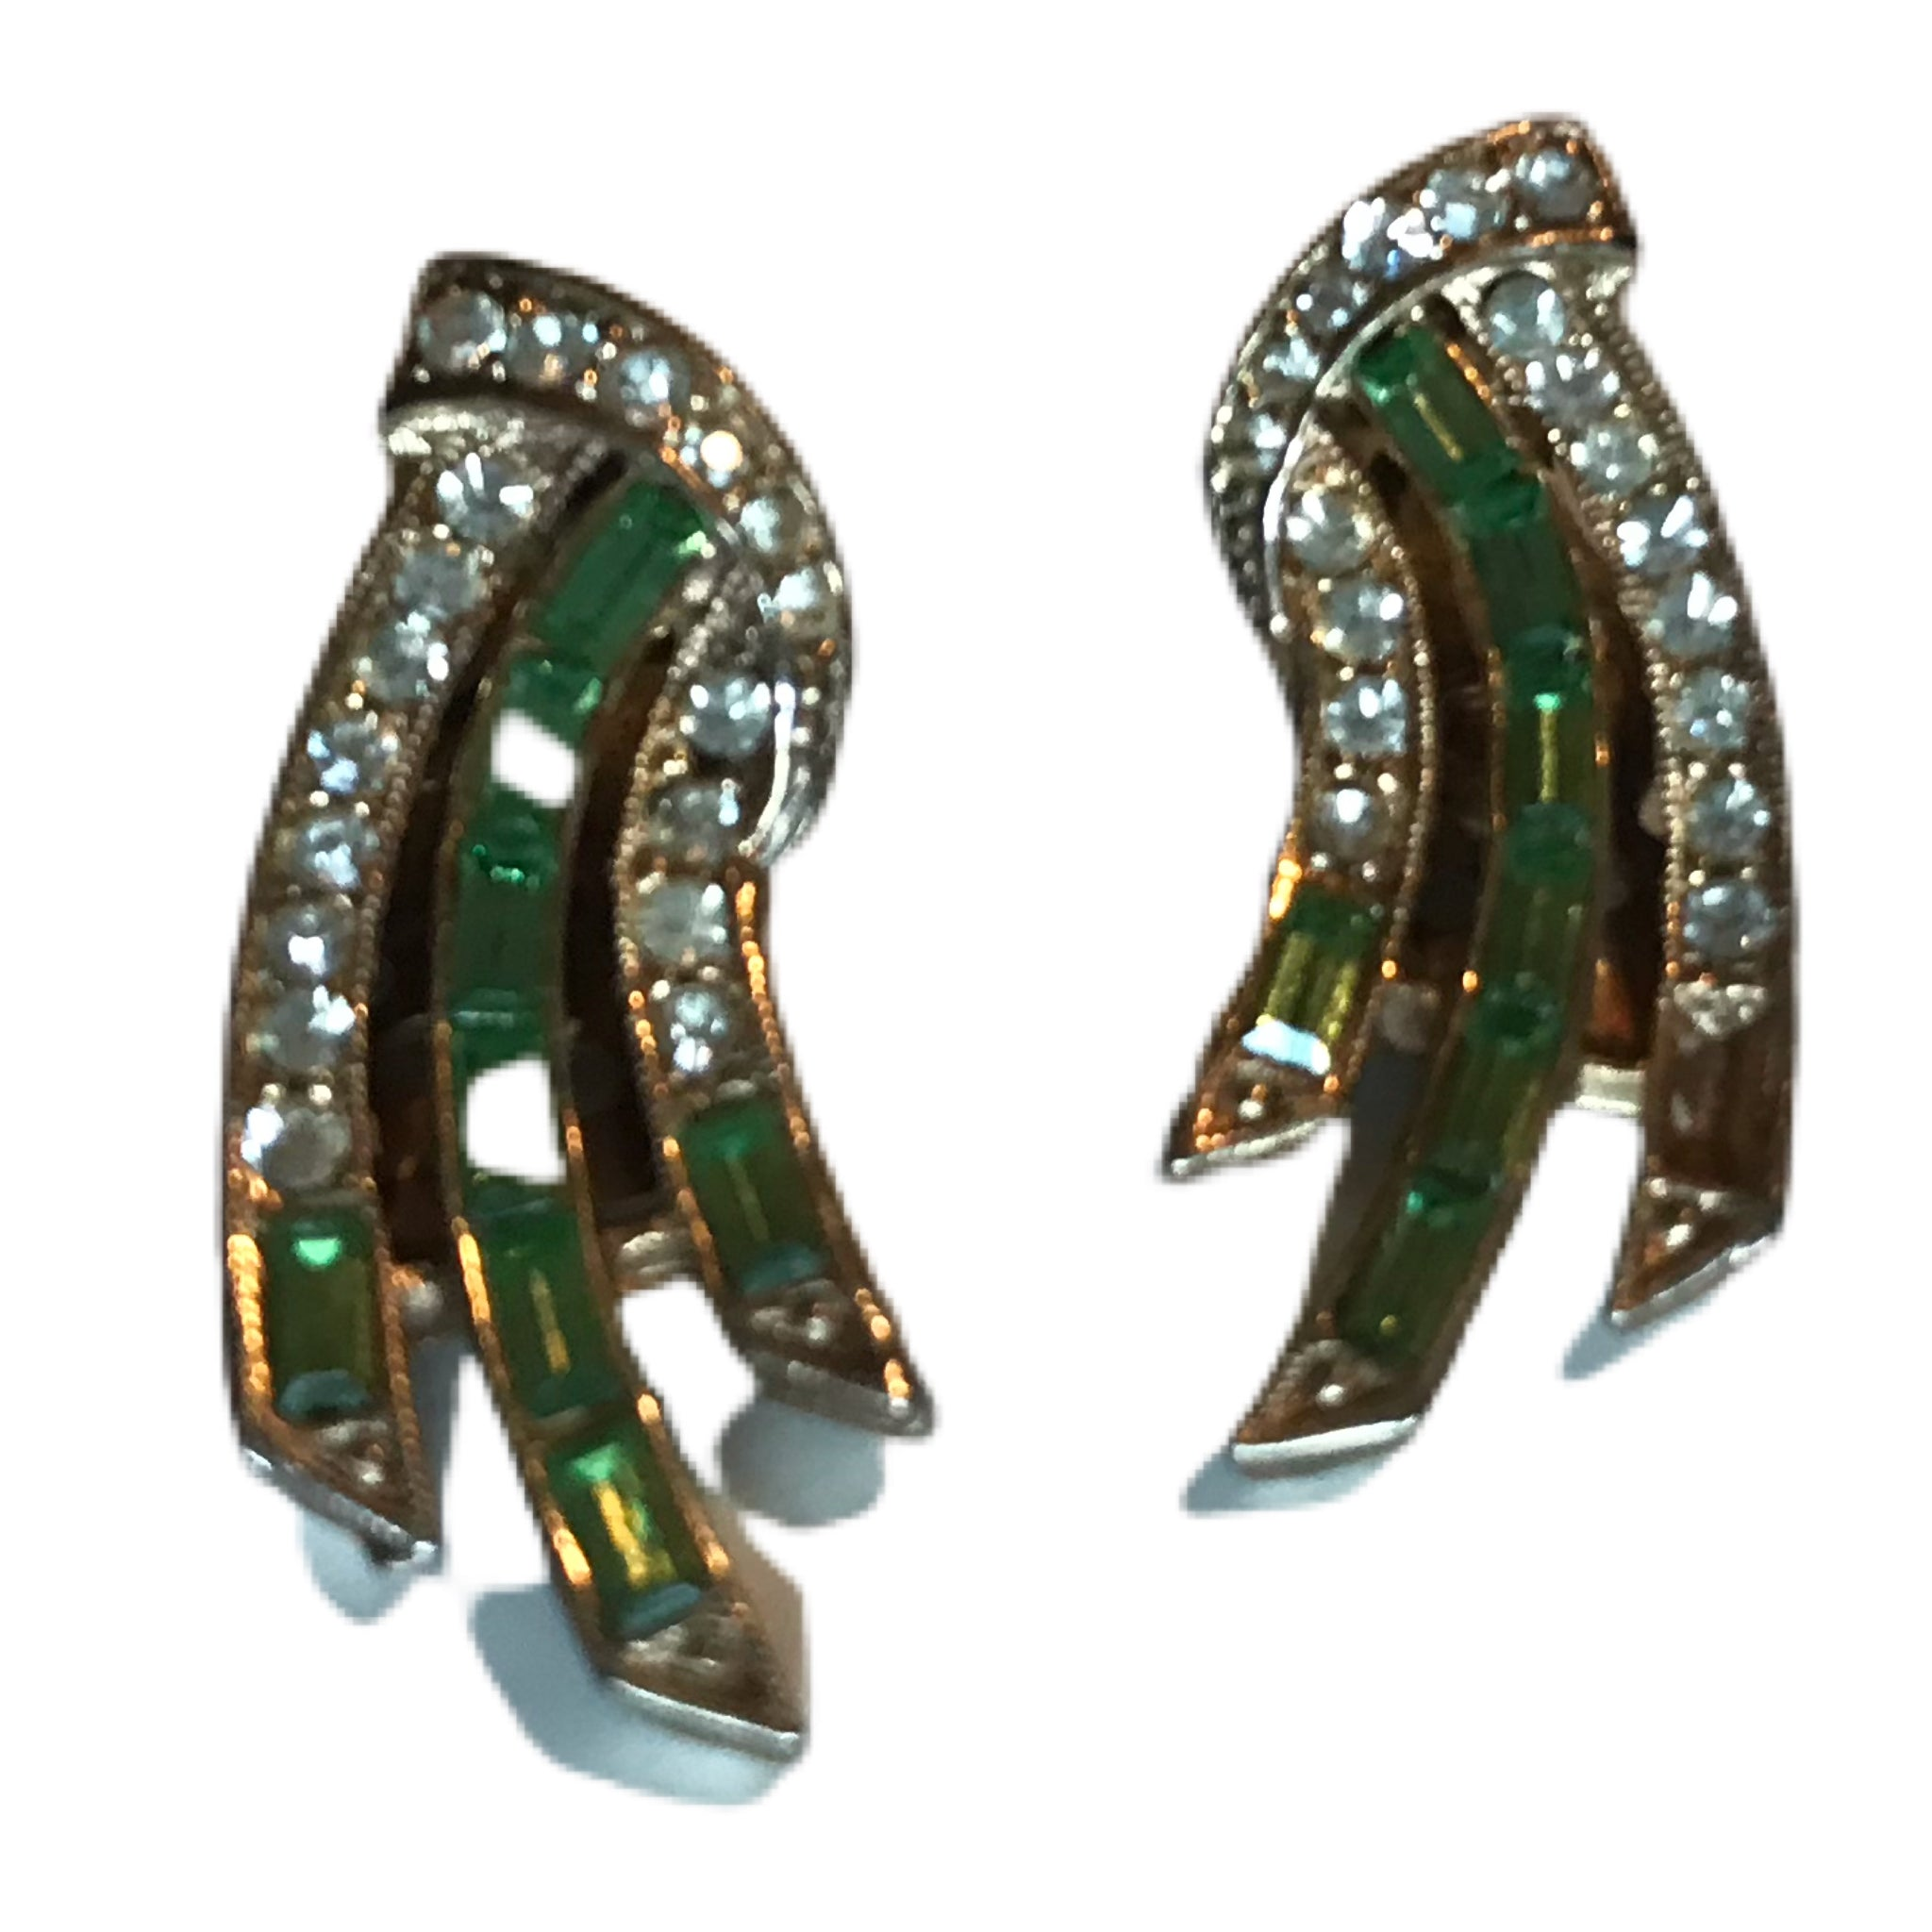 Citrine Green Bezel Set Rhinestone and Crystal Clip Earrings circa 1960s